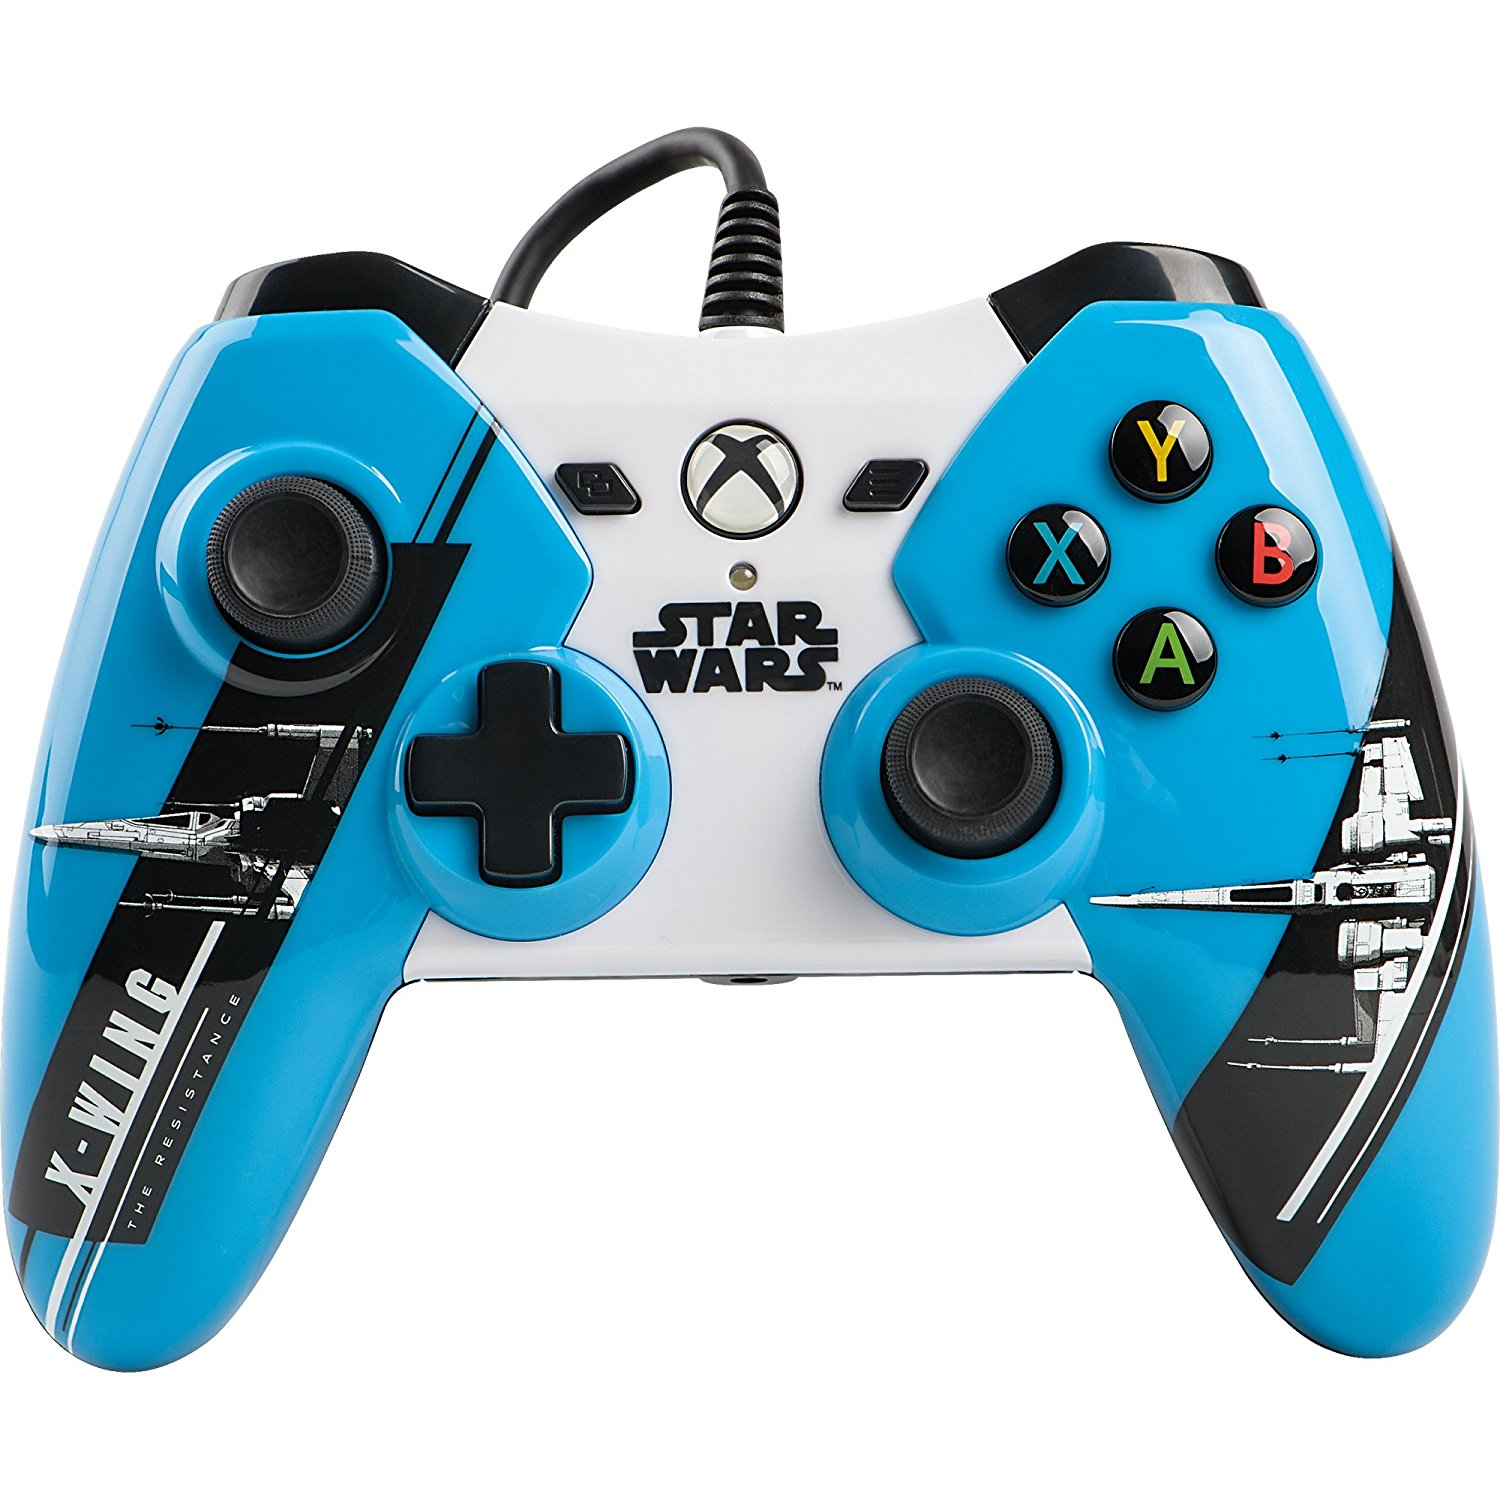 POWER A Xbox One Wired Controller: Star Wars The Force Awakens - X Wing